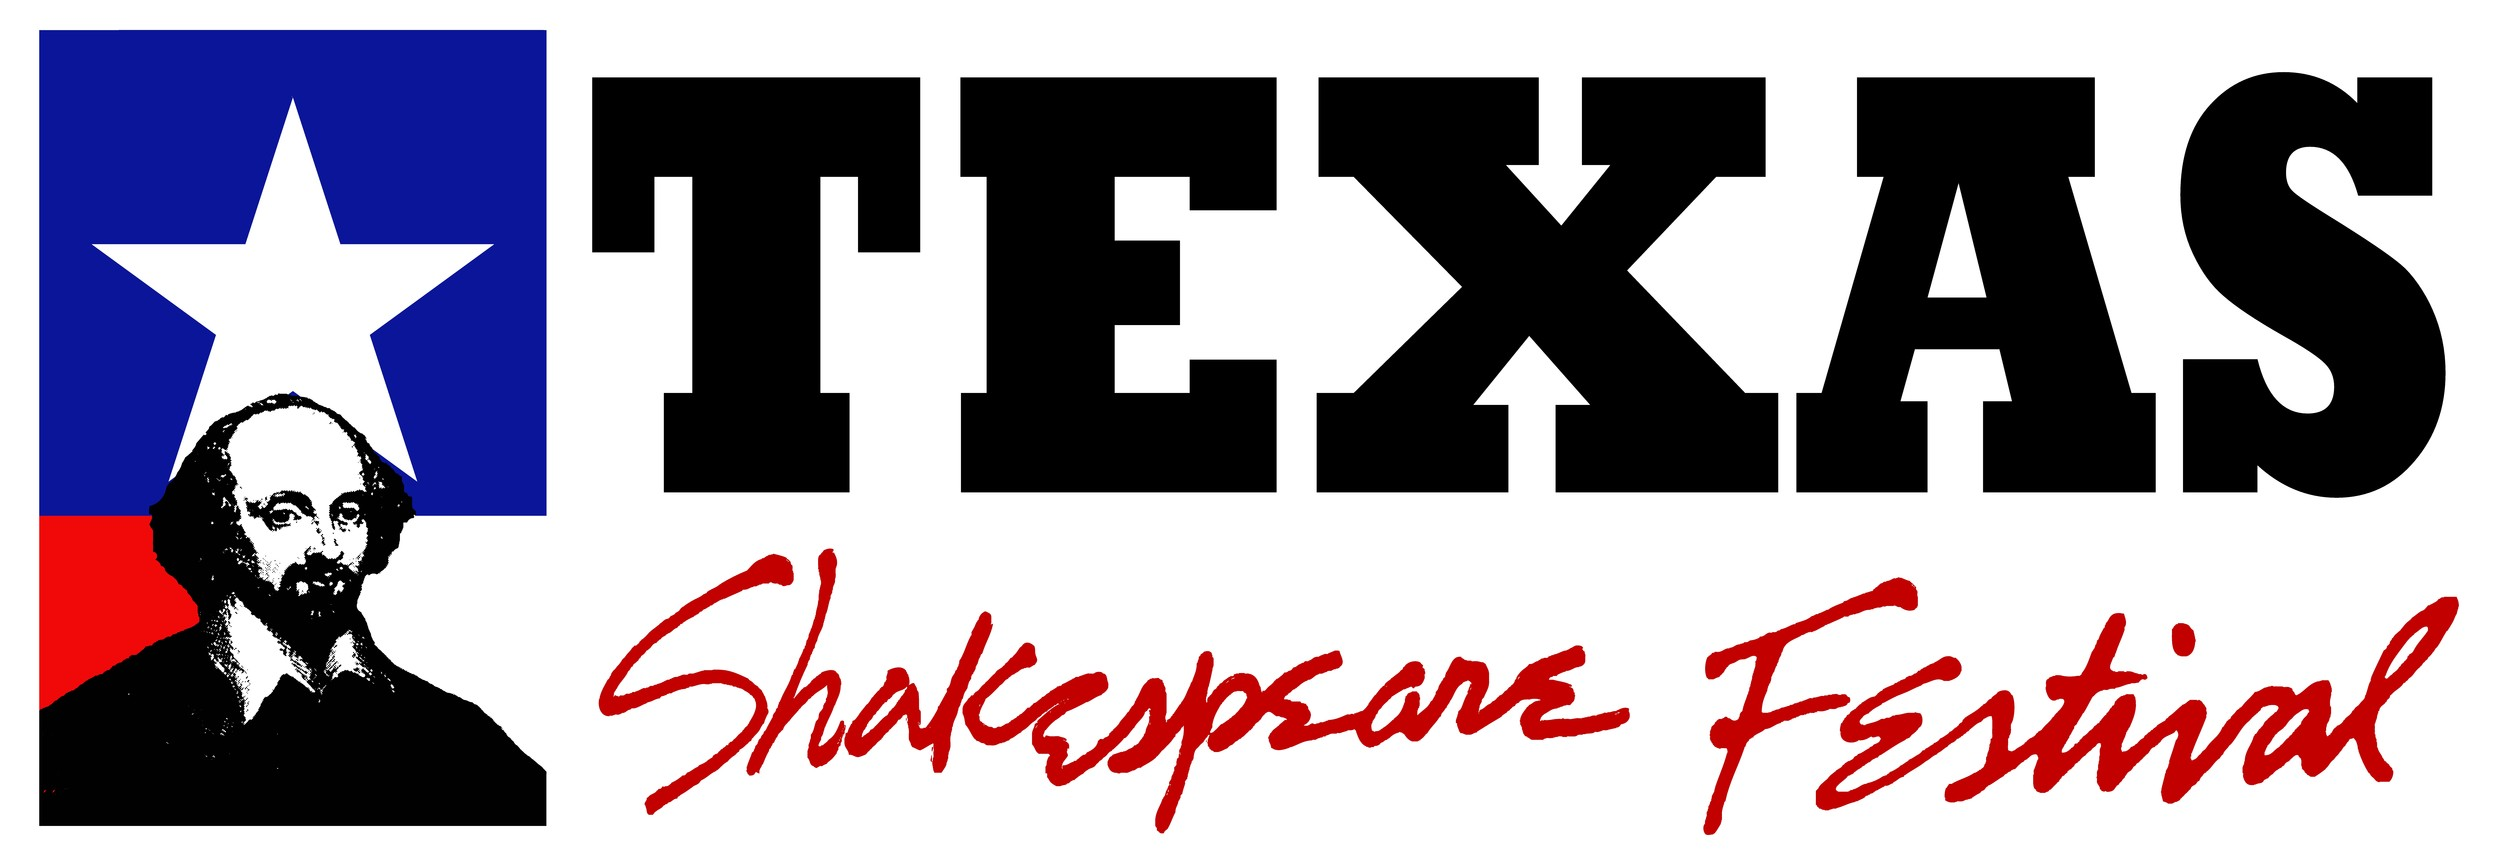 June 28 - July 29 2018 - Junior appeared in in Love's Labours Lost (Dumain), Tartuffe (Valere), and King John (Austria/Melun) last summer at the Texas Shakespeare Festival in Kilgore, Texas.